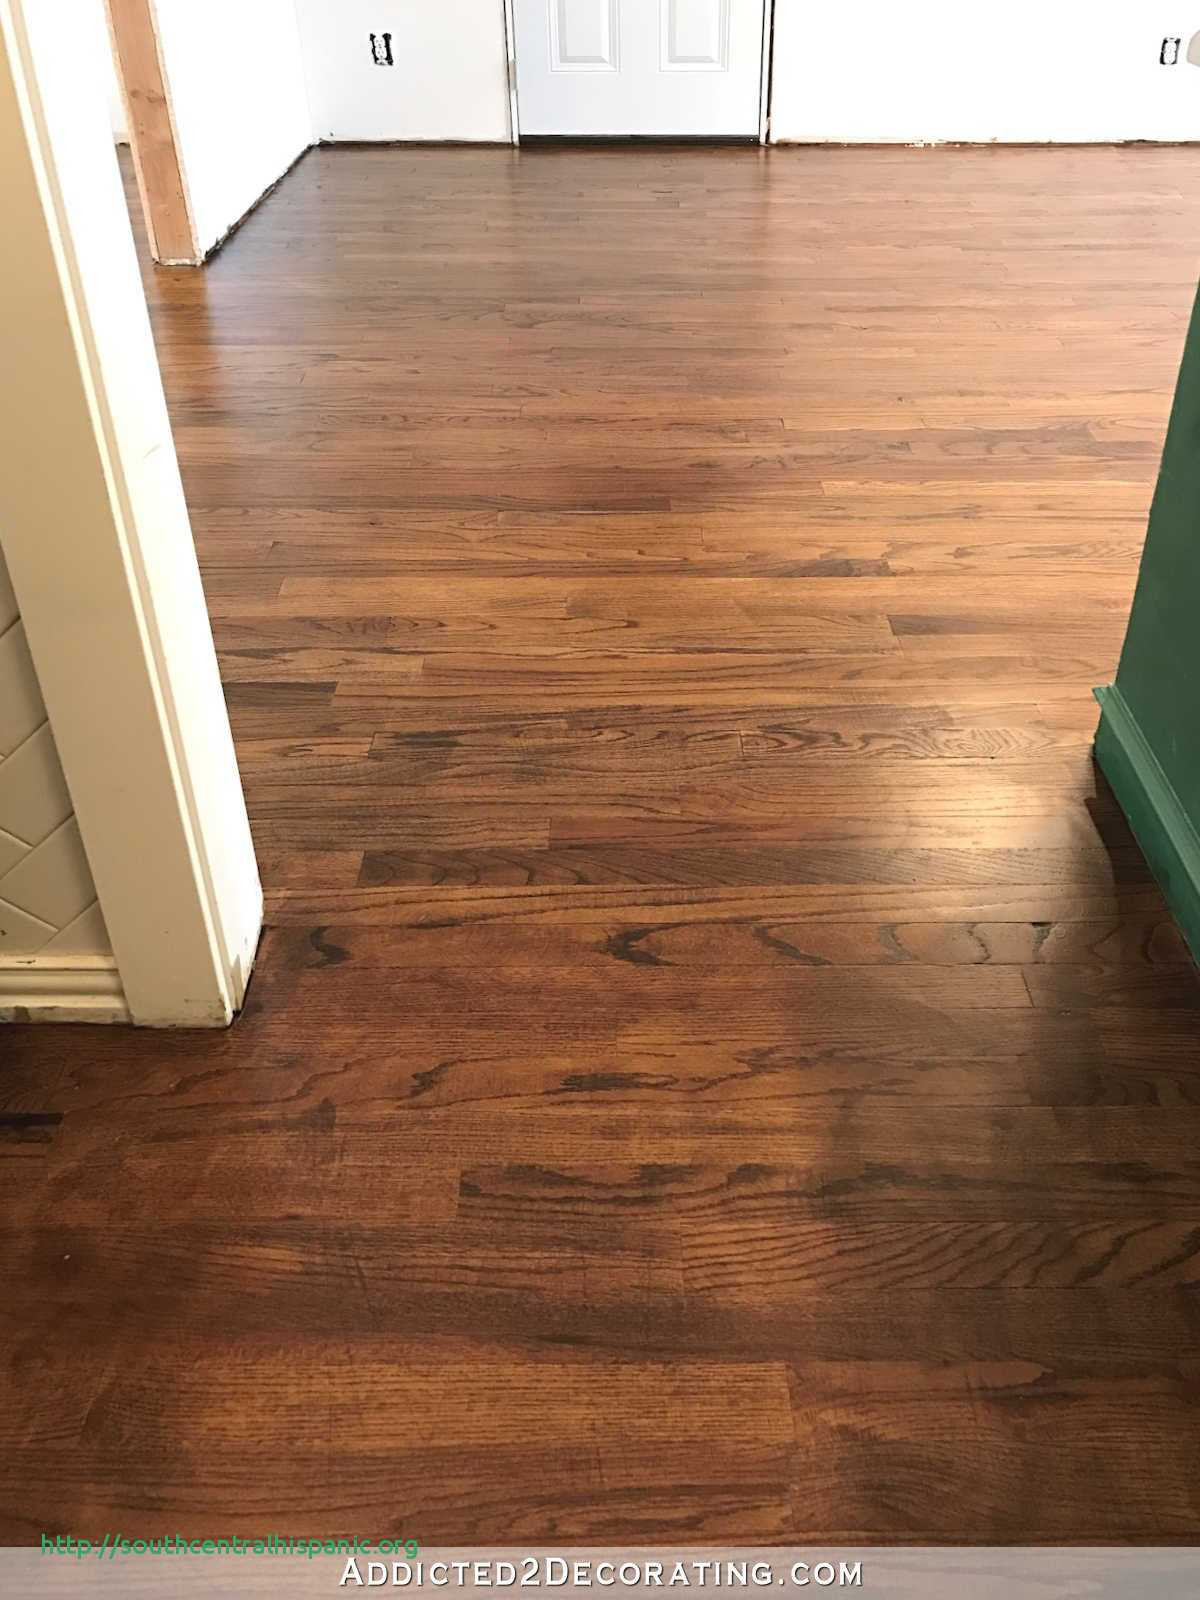 12 Great 3 1 4 Red Oak Hardwood Flooring 2021 free download 3 1 4 red oak hardwood flooring of 15 inspirant hardwood flooring cost per sq ft ideas blog with regard to cost hardwood floors per square foot fresh gorgeous my newly refinished red oak har